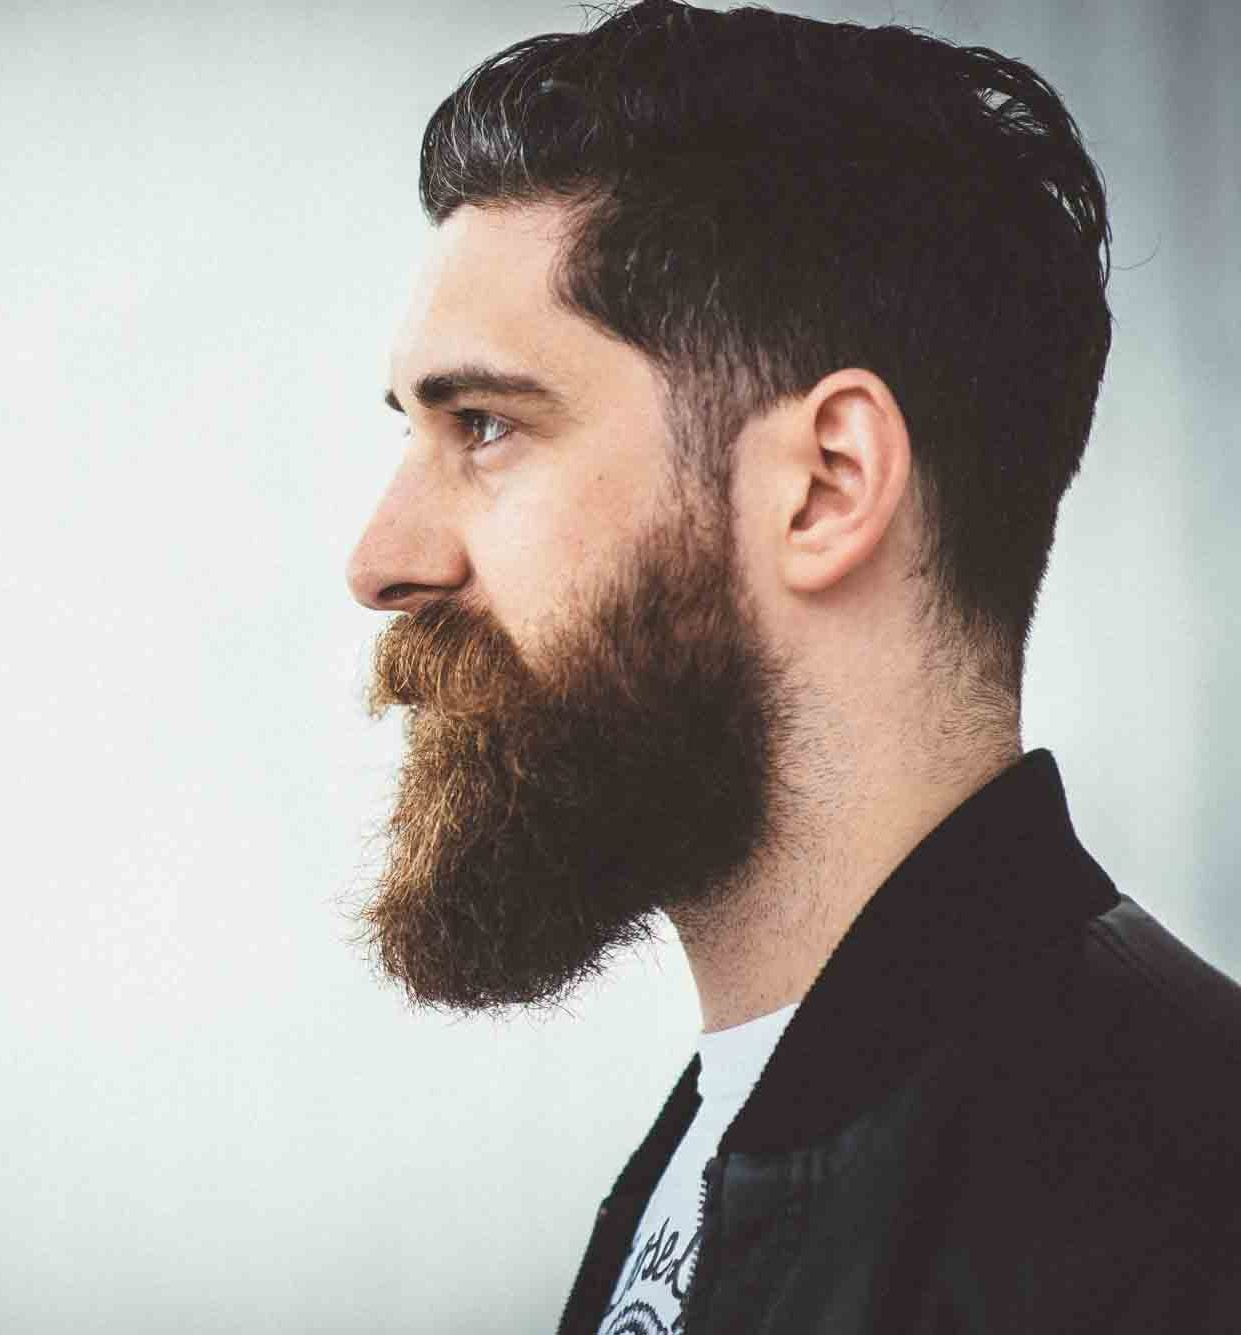 beard styles for with hair beard styles and tips on growing and styling beard 8507